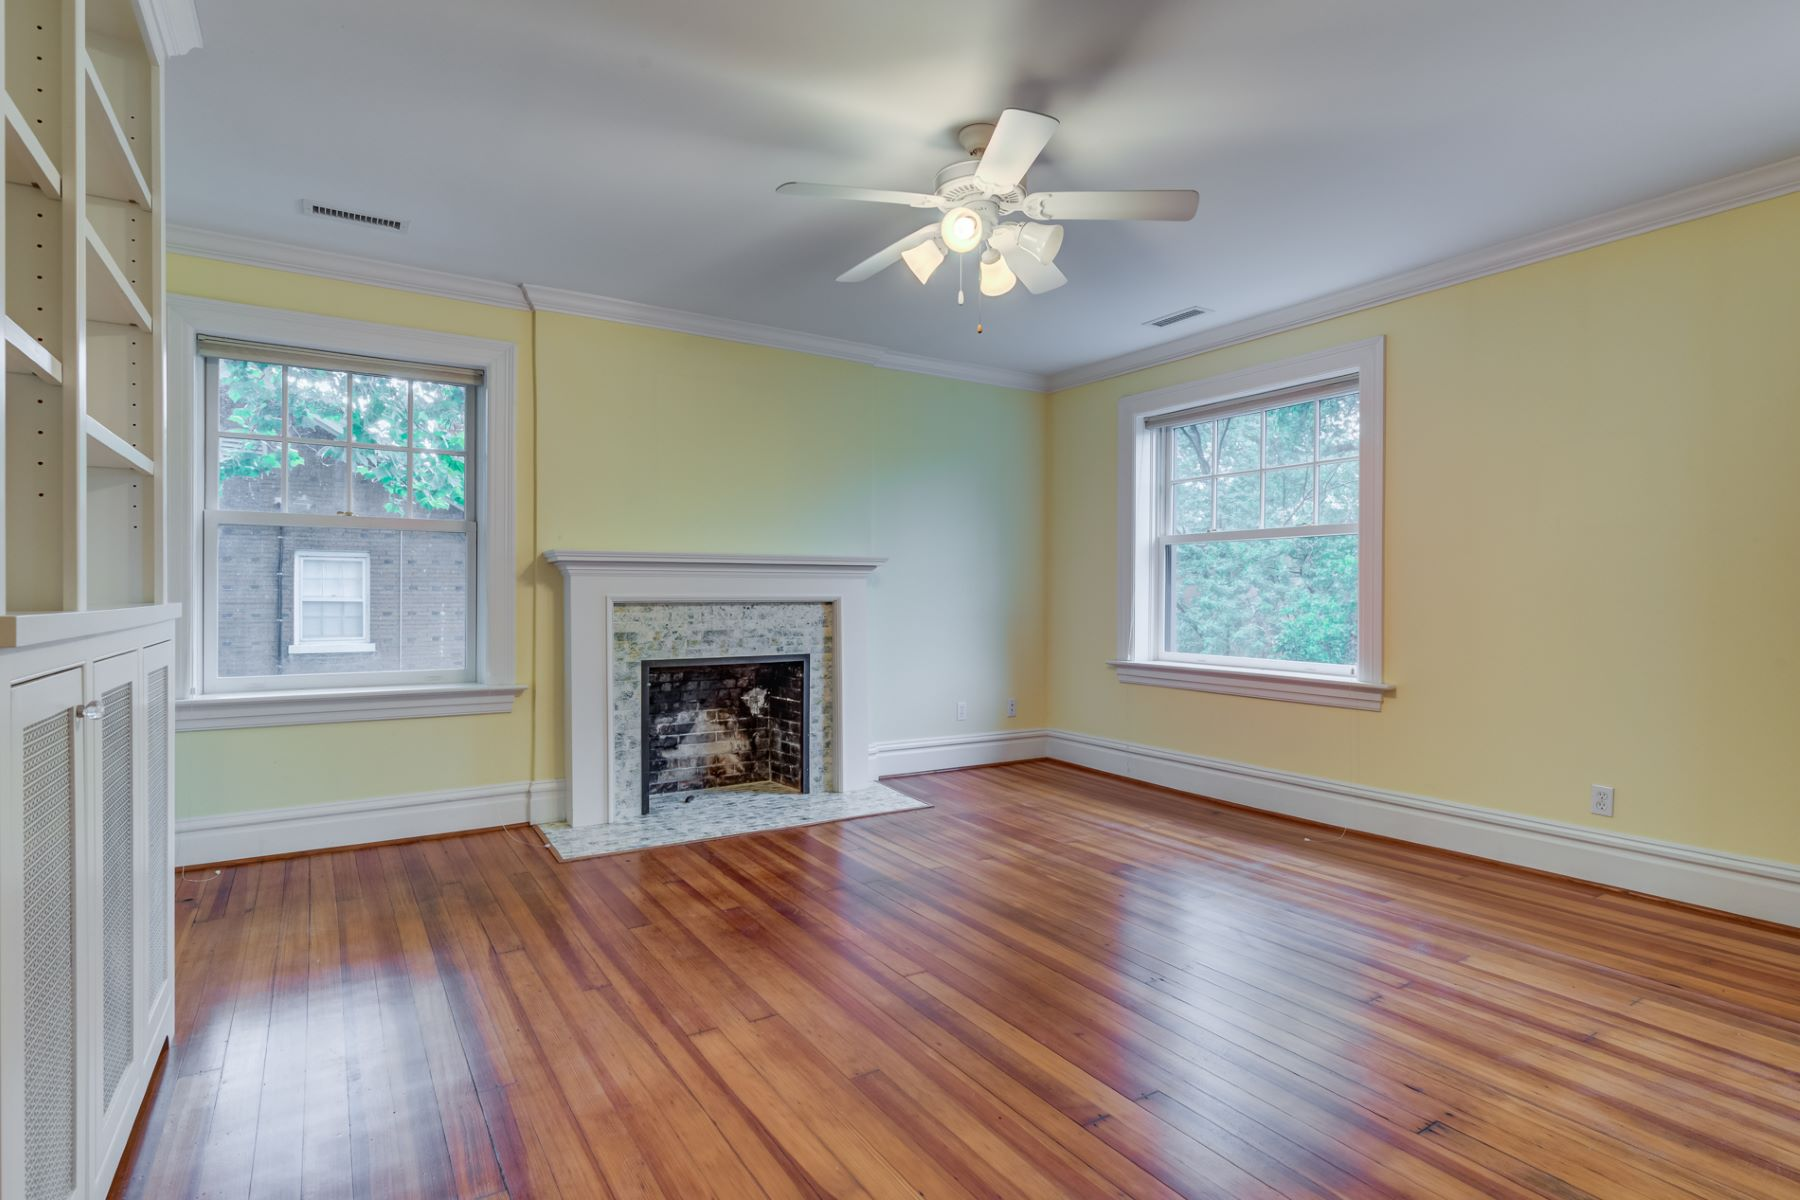 Additional photo for property listing at Lenox Place 10 Lenox Place St. Louis, Missouri 63108 United States